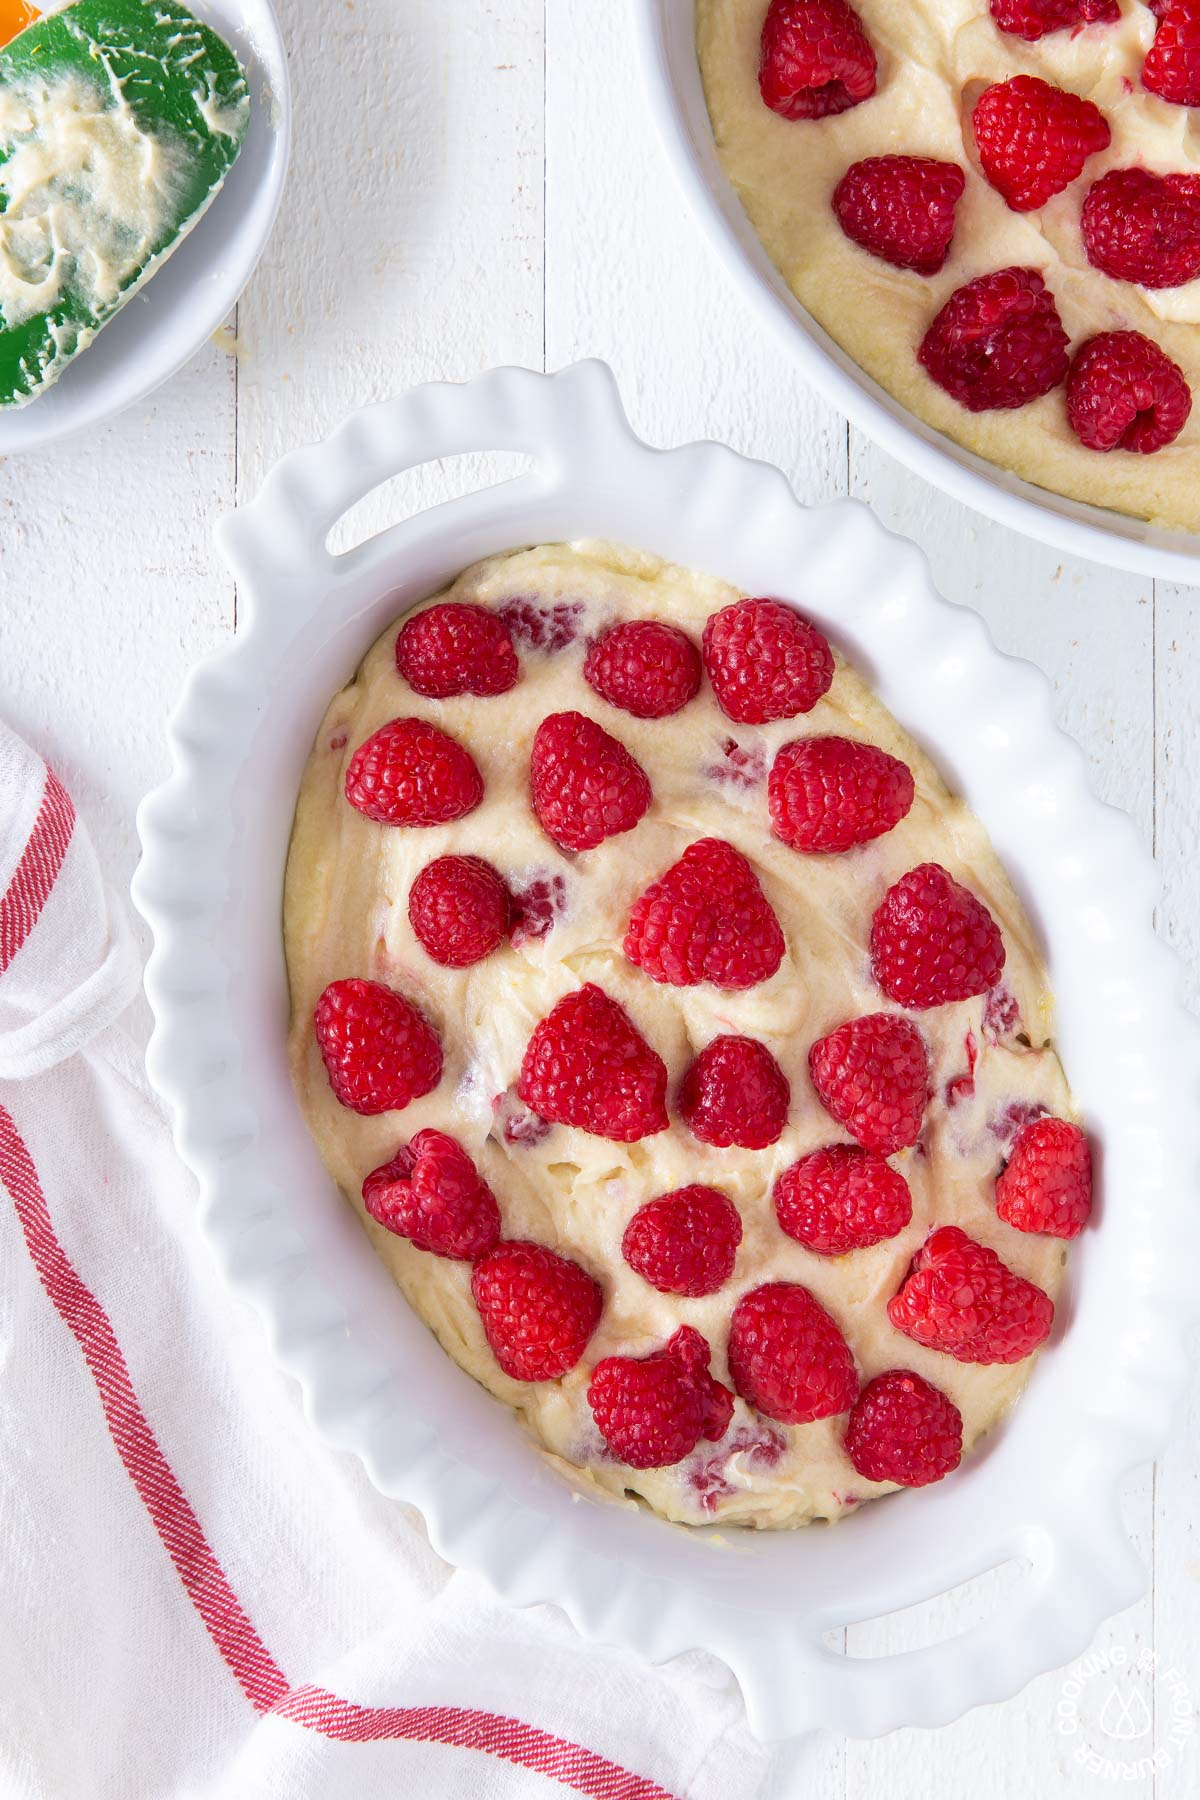 cake batter with adding raspberries on top